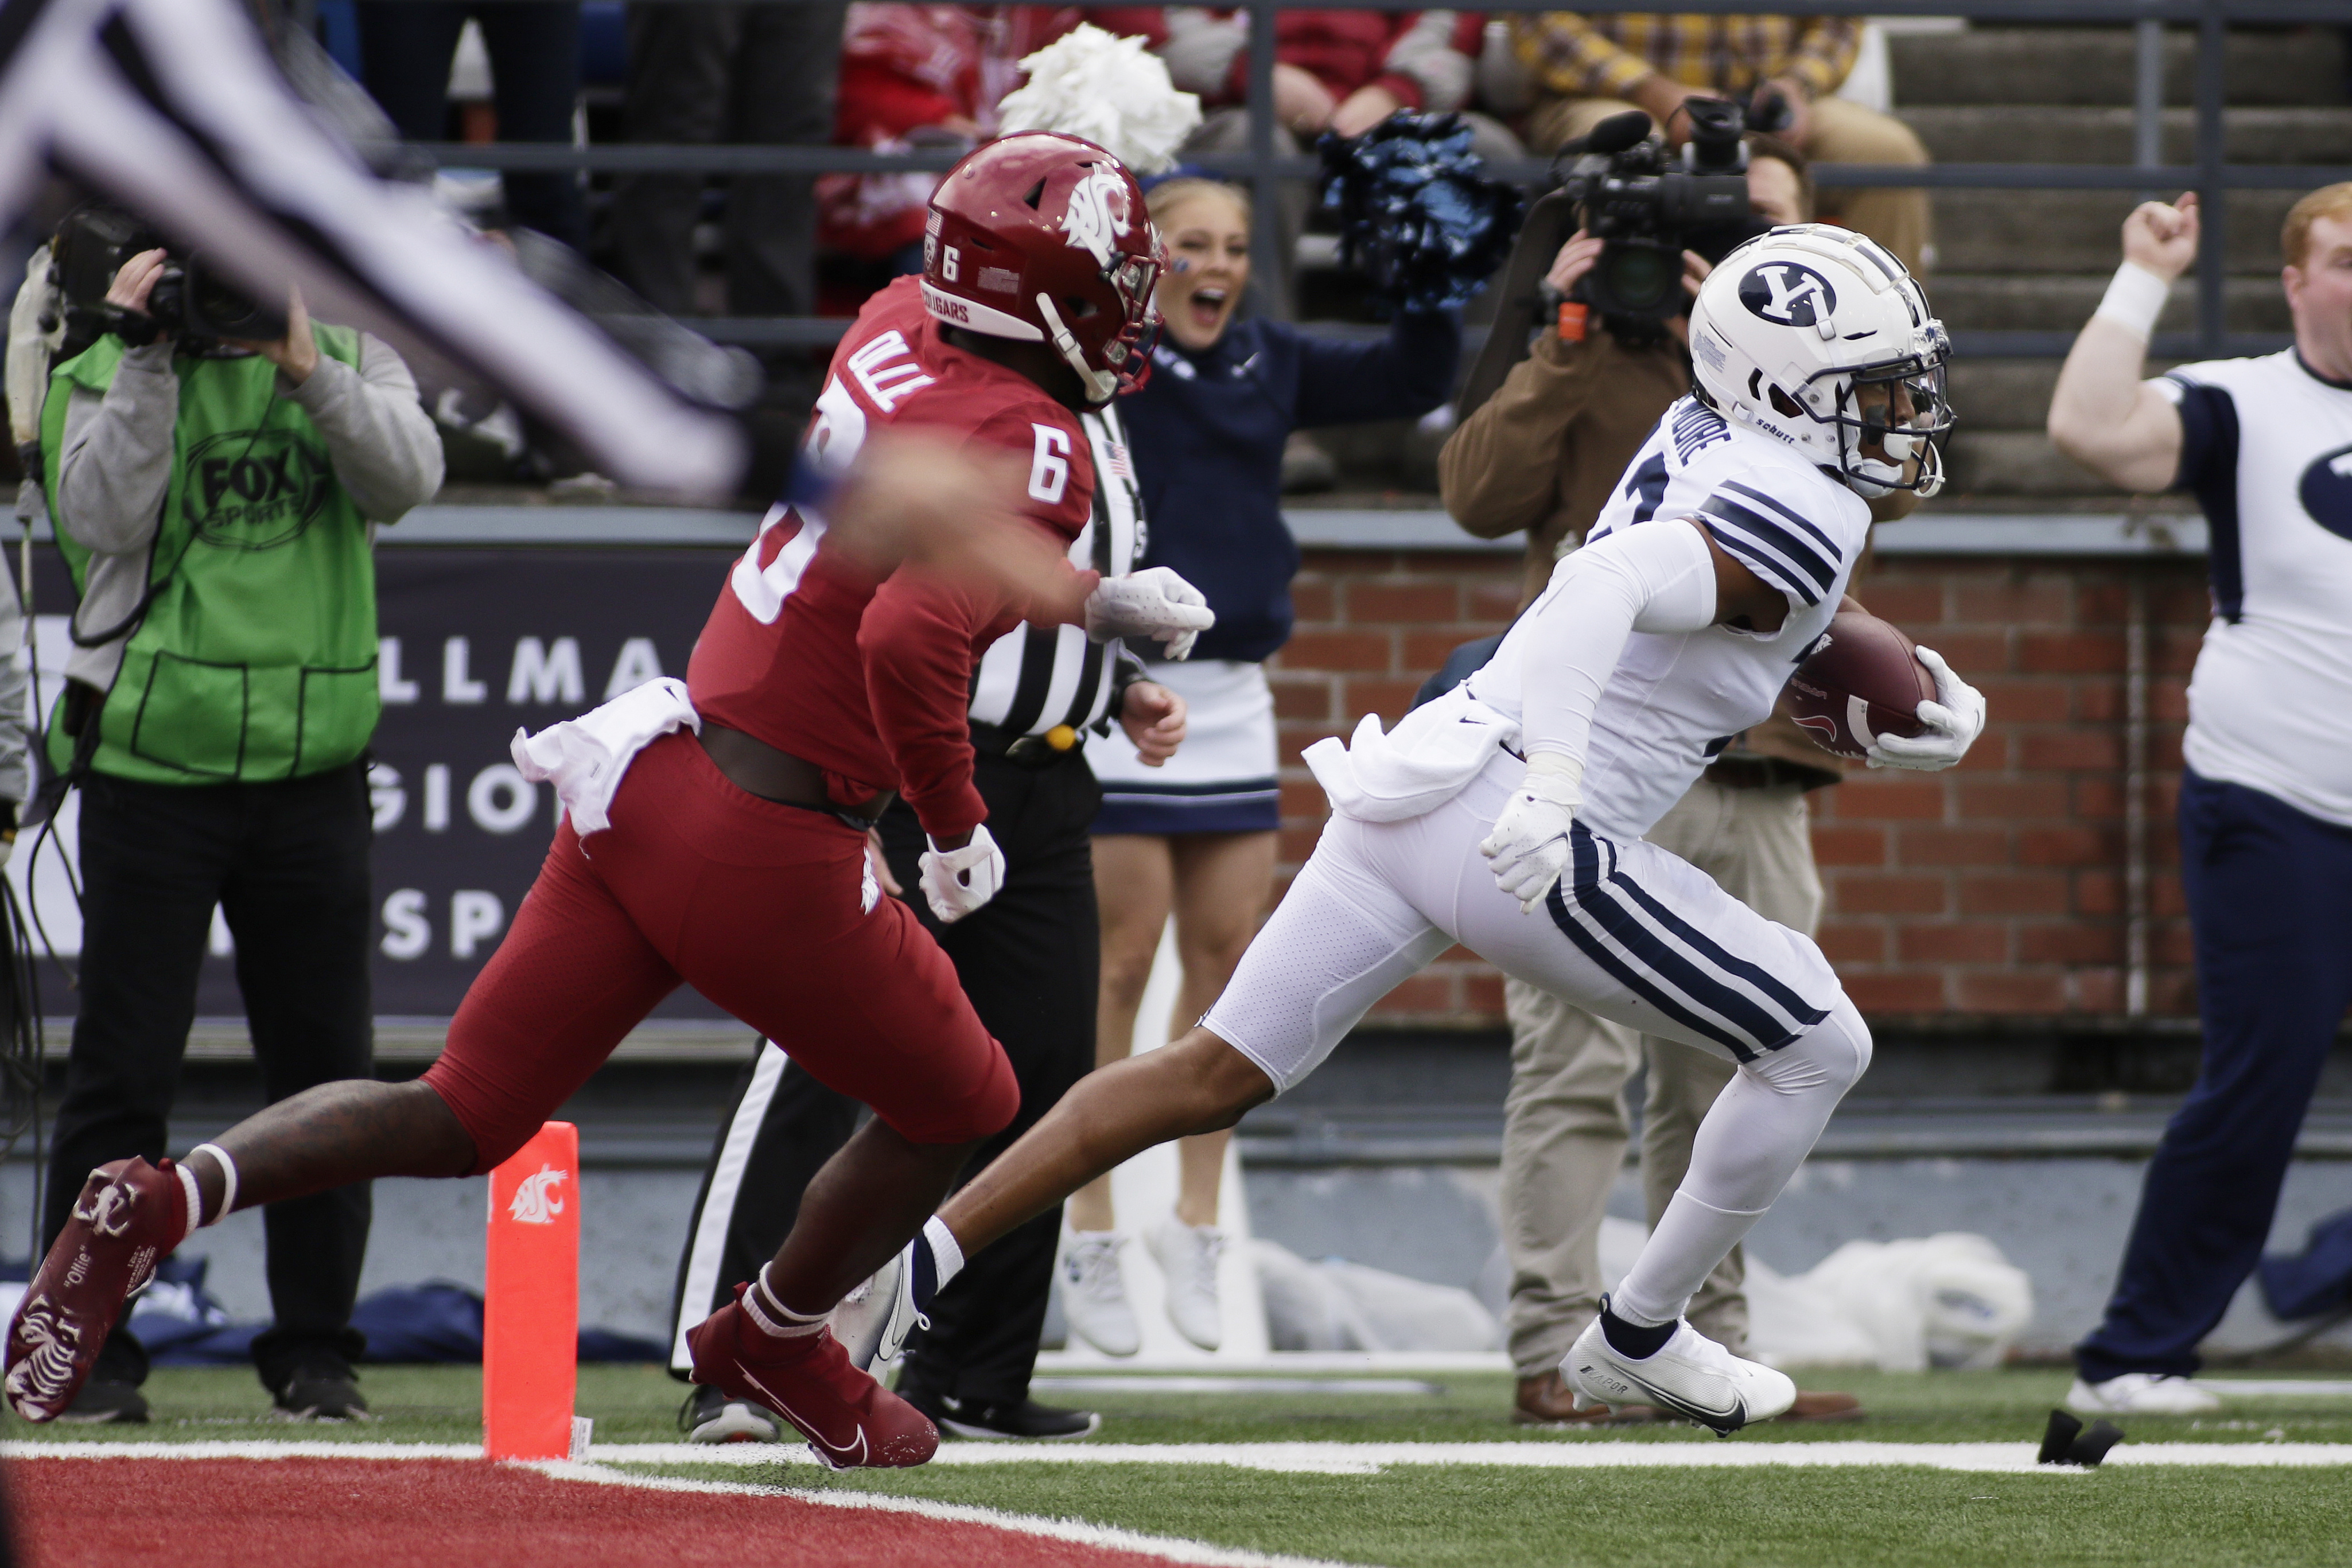 BYU defensive back Malik Moore, right, runs the interception he caught on a pass intended for Washington State wide receiver Donovan Ollie.